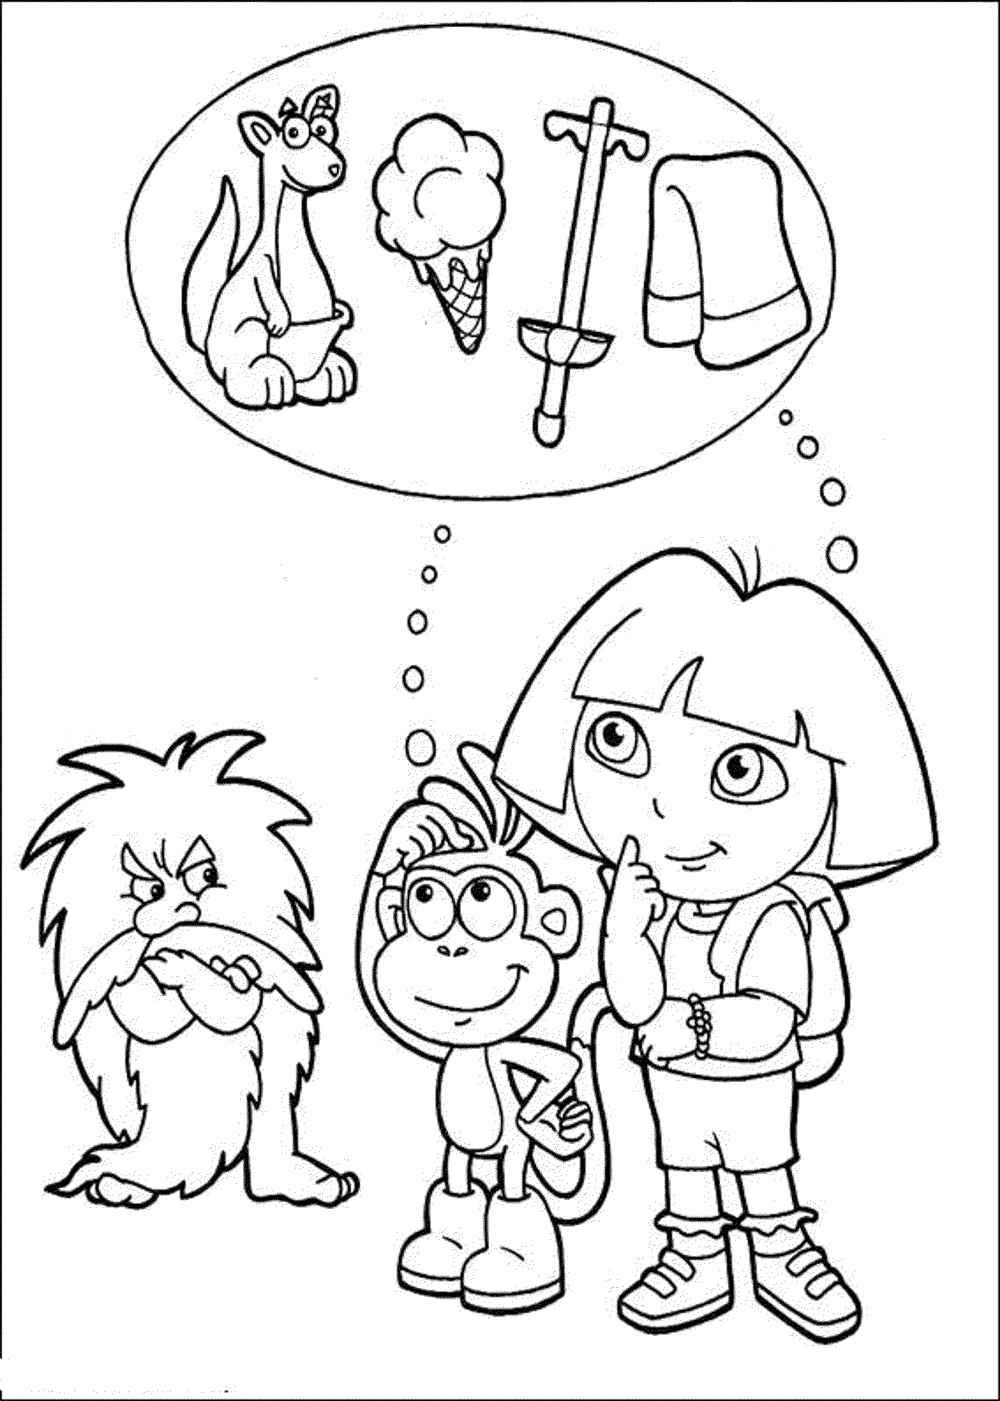 dora and friends coloring pages - dora coloring pages learn new things